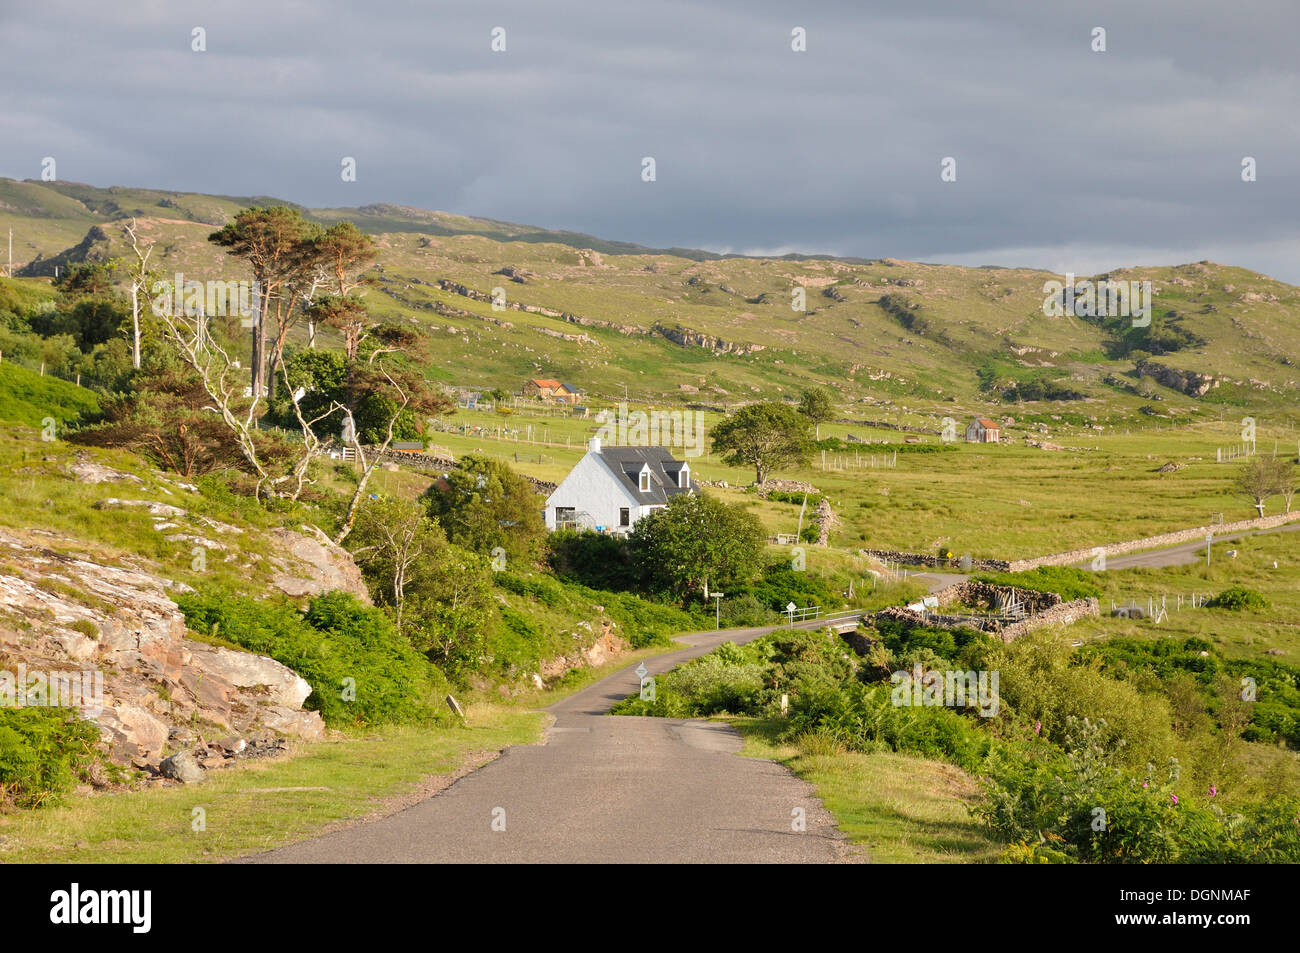 Narrow street in a sparsely populated coastal landscape on the coast of the Atlantic Ocean, Northern Highlands, Highlands - Stock Image